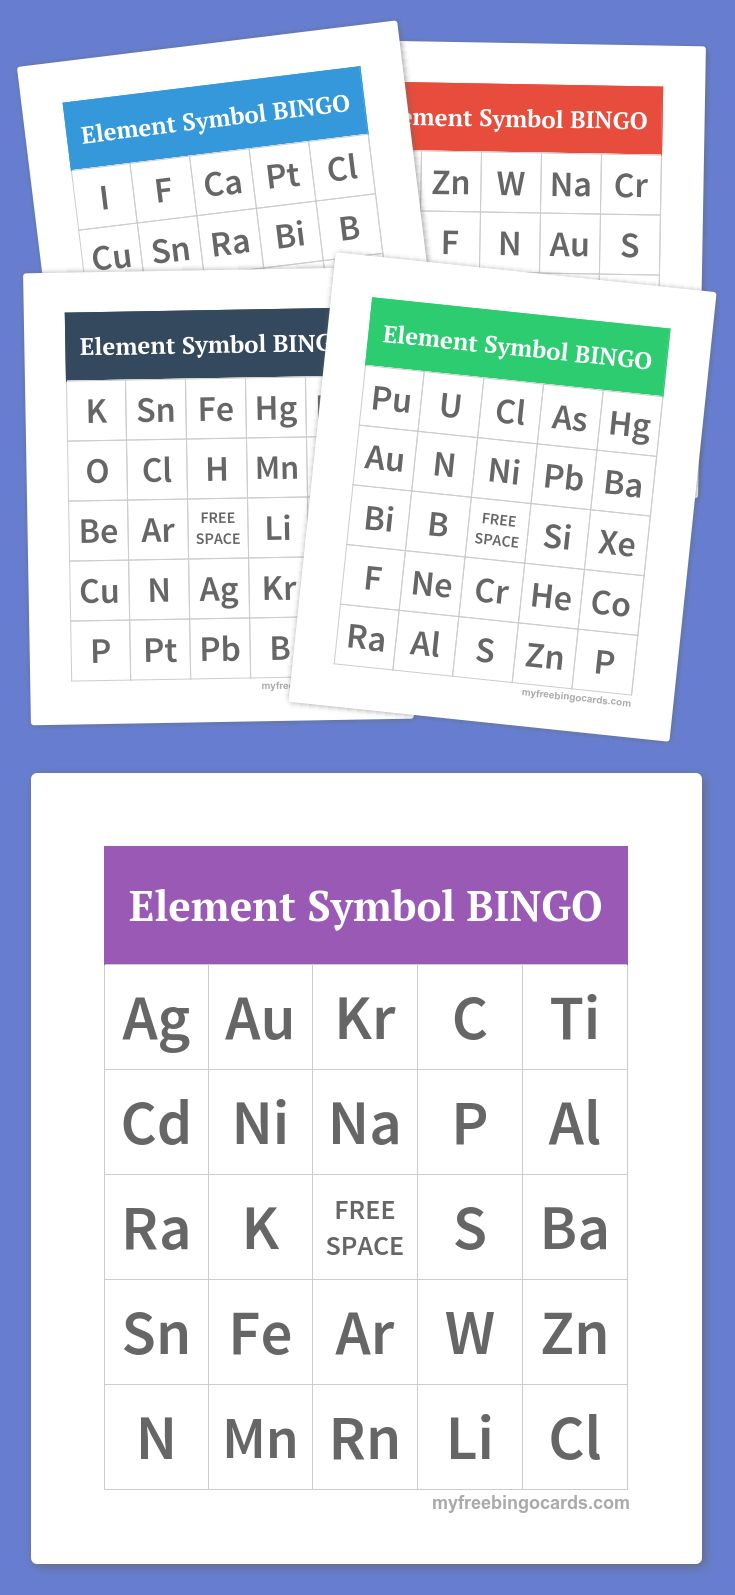 207 best the periodic table images on pinterest science 207 best the periodic table images on pinterest science chemistry physical science and chemistry gamestrikefo Images